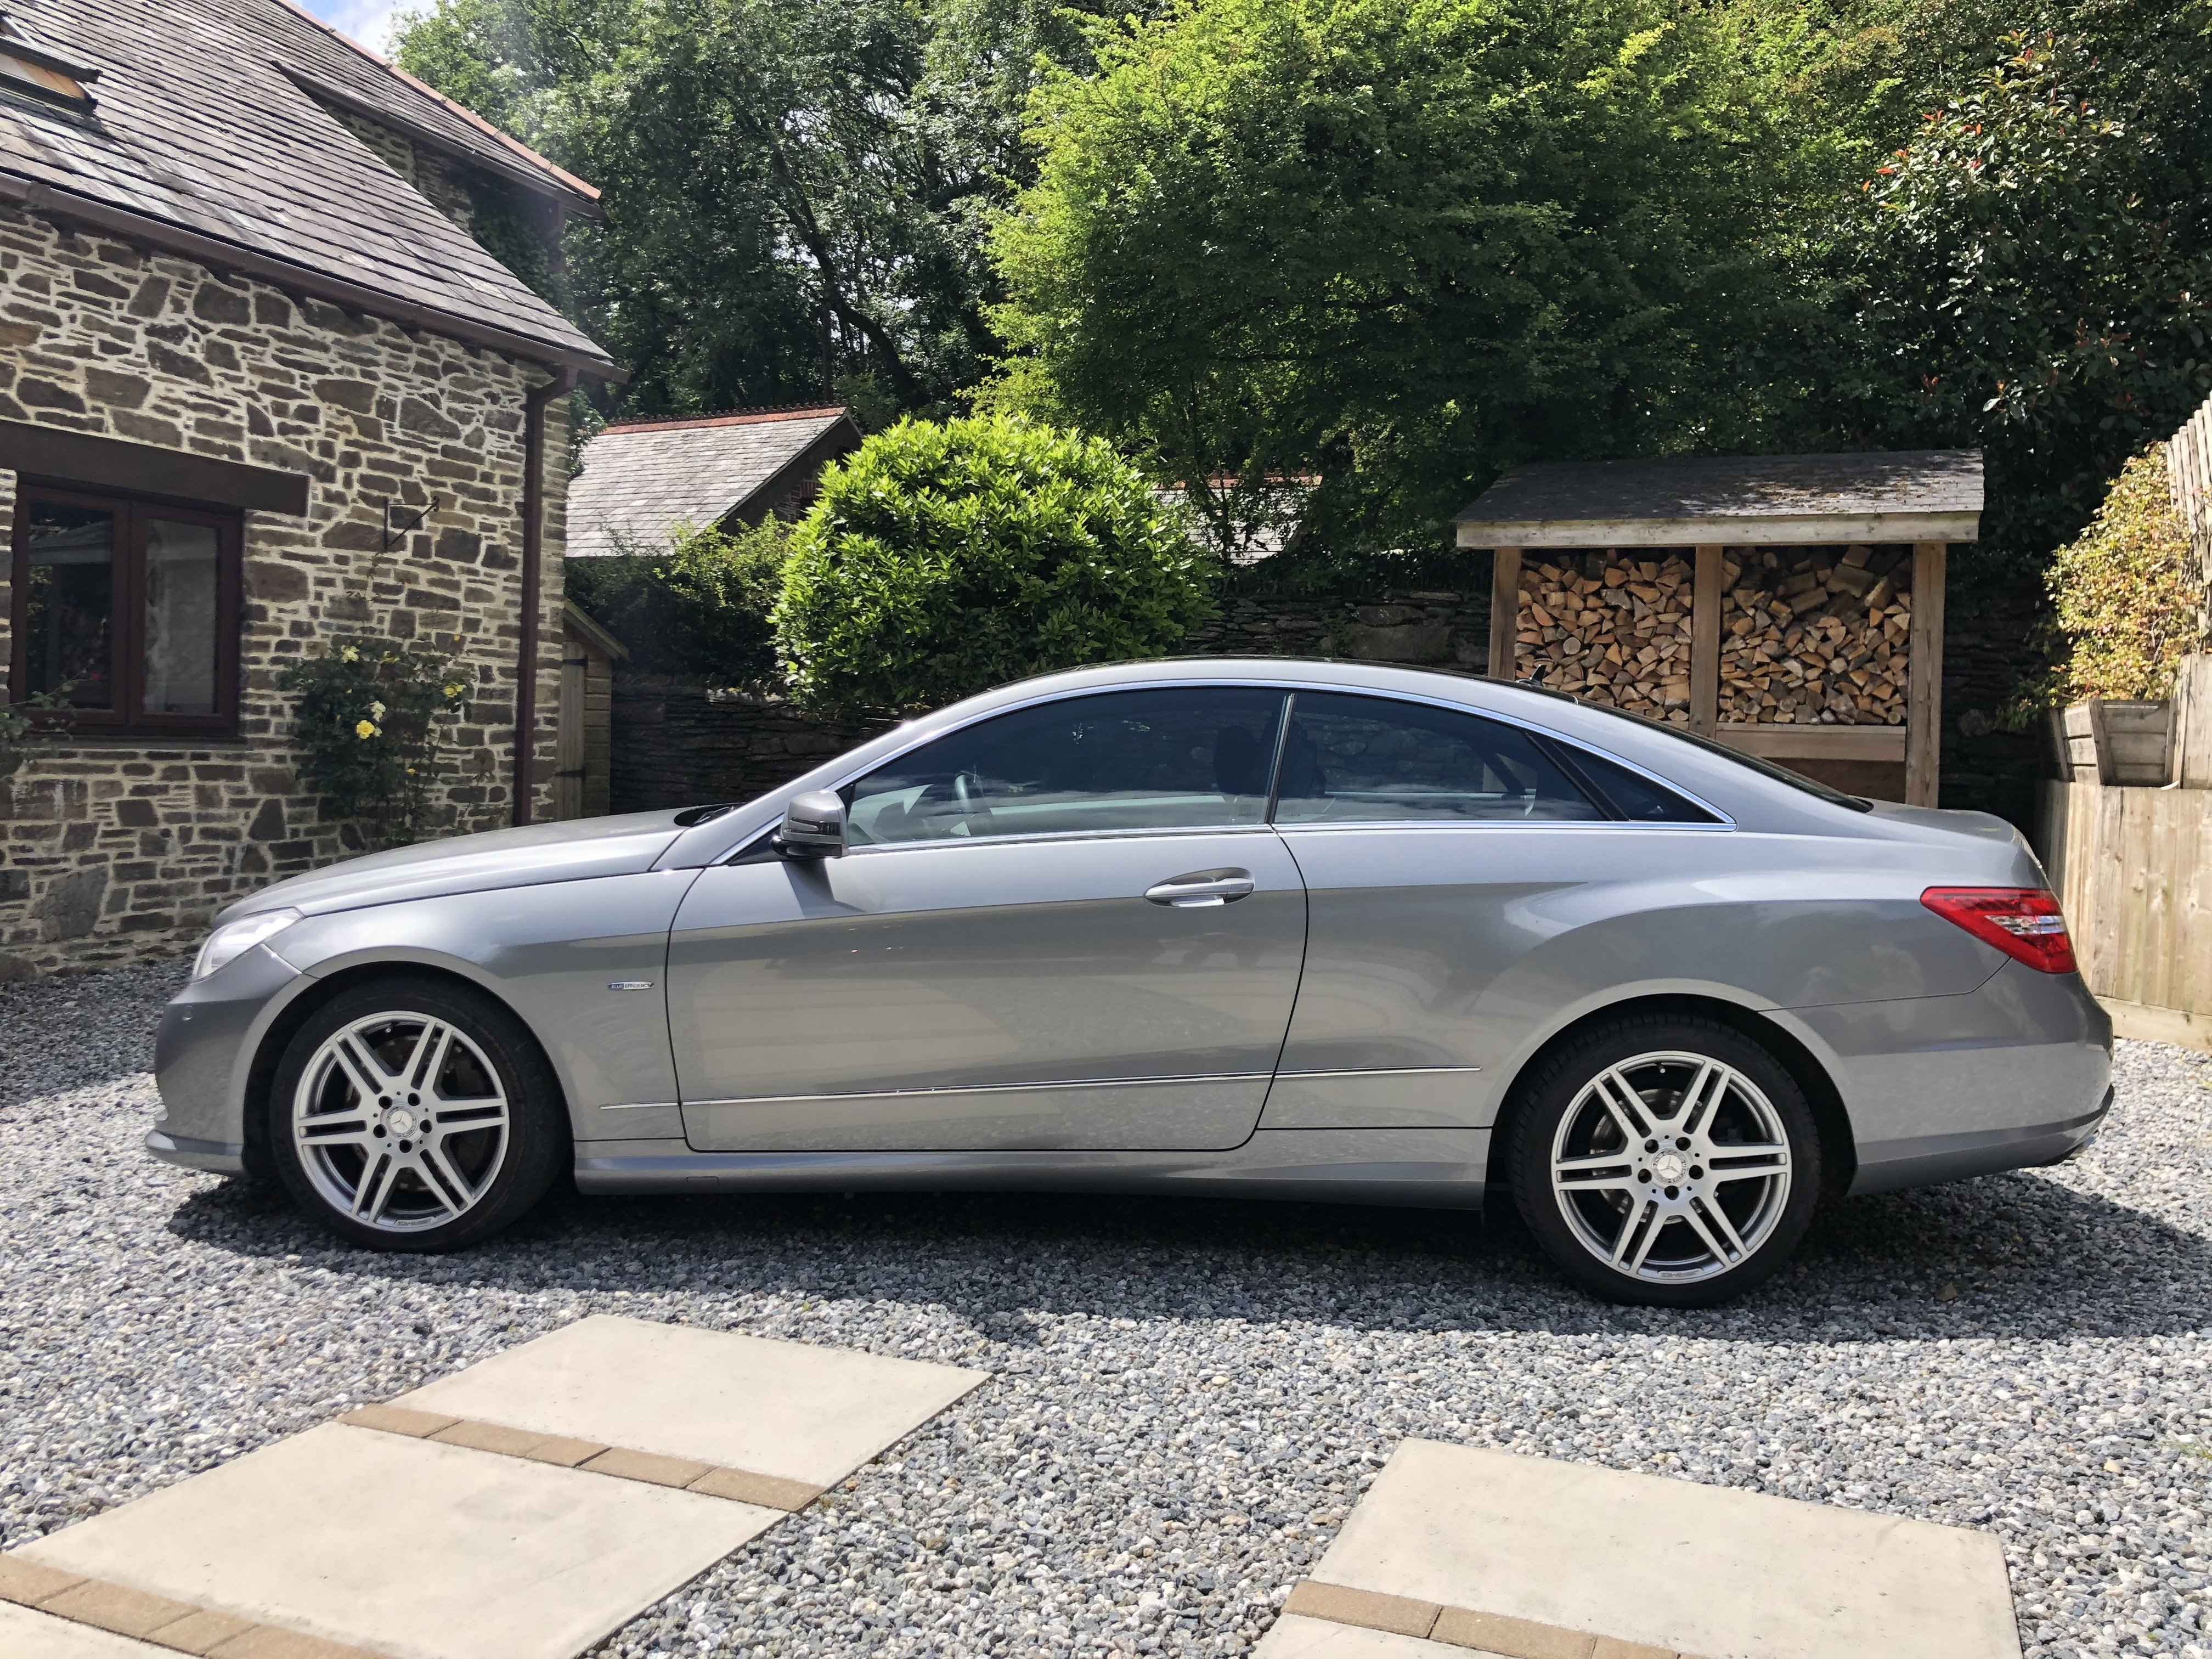 2011 Mercedes E Class Coupe 4.7 twin-turbo V8 (C207/M278 - MY12) For Sale (picture 2 of 6)